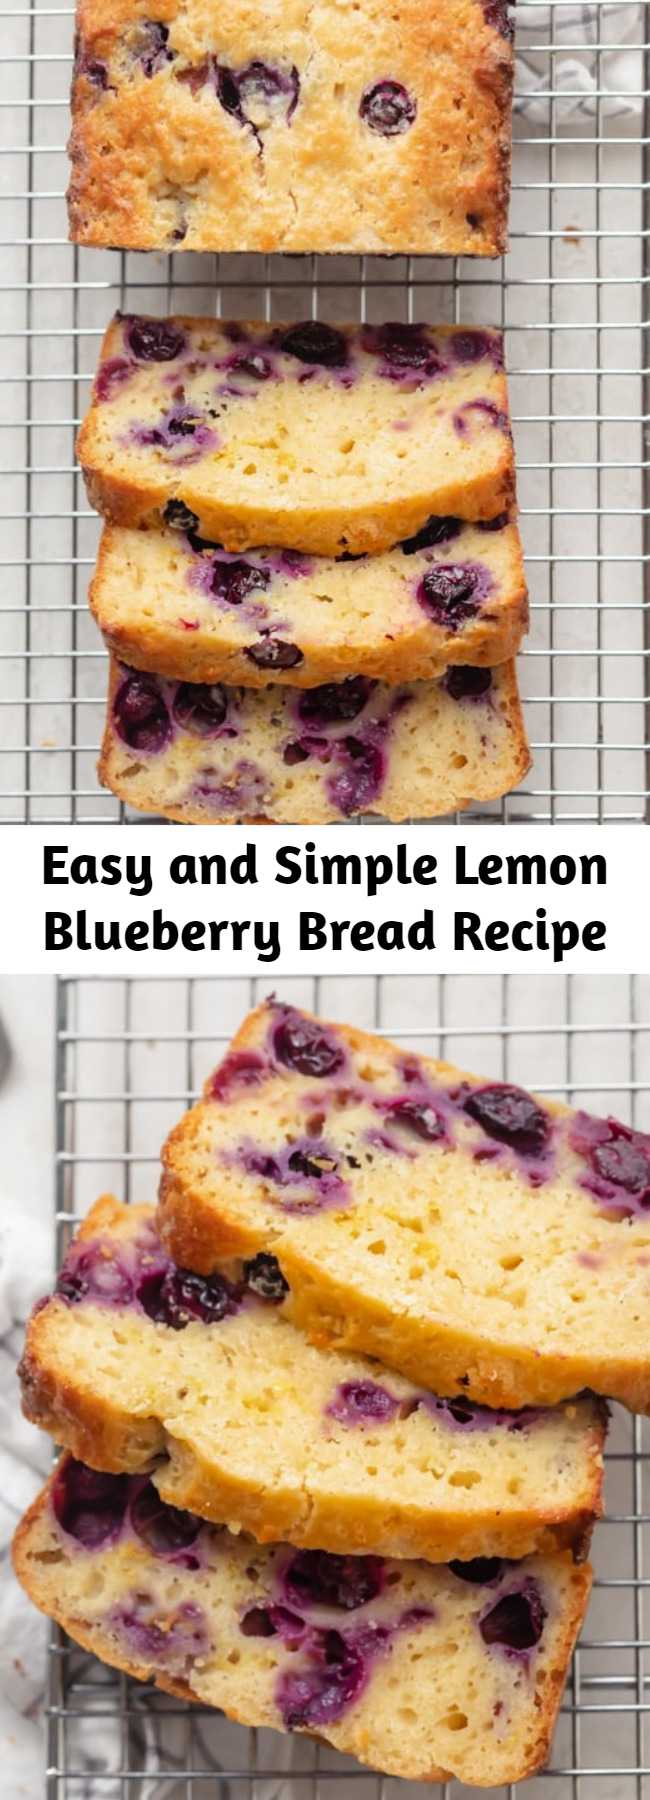 Easy and Simple Lemon Blueberry Bread Recipe - Welcome spring with this fresh and light Lemon Blueberry Bread. It's easy to make with simple ingredients, and comes out moist, fluffy & packed with flavor. This is a soft and moist quick bread that is packed with flavor, and super simple to make. #easybaking ##springbaking #springrecipes